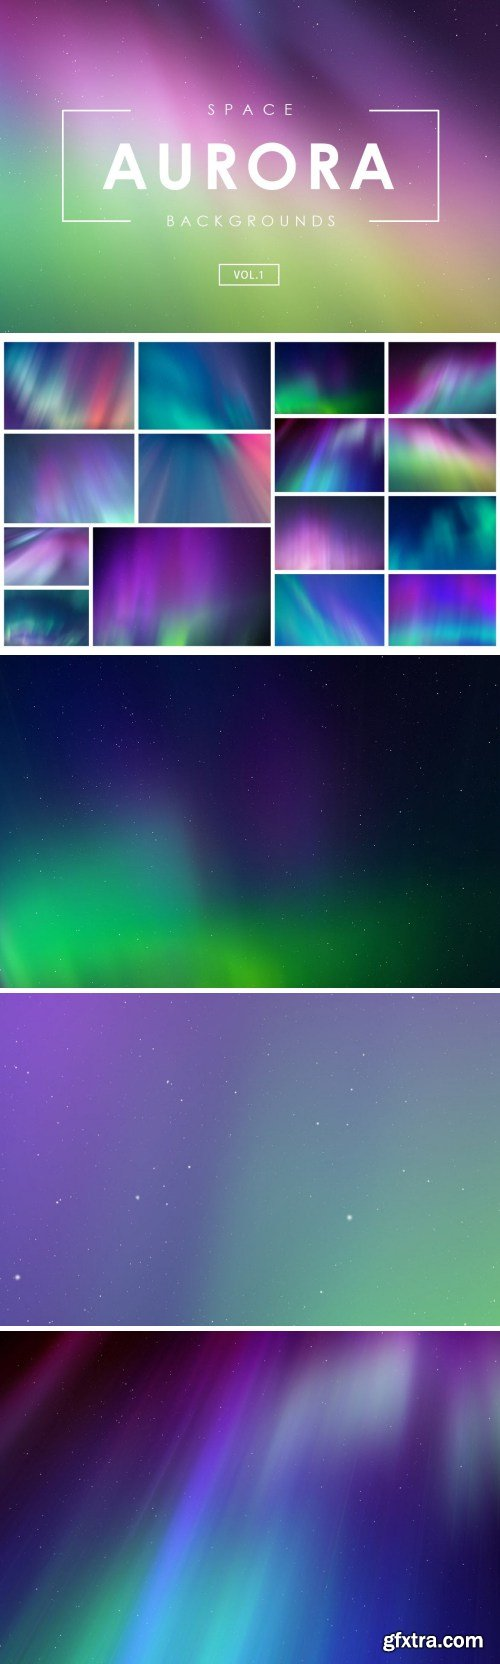 Aurora Space Backgrounds Vol.1